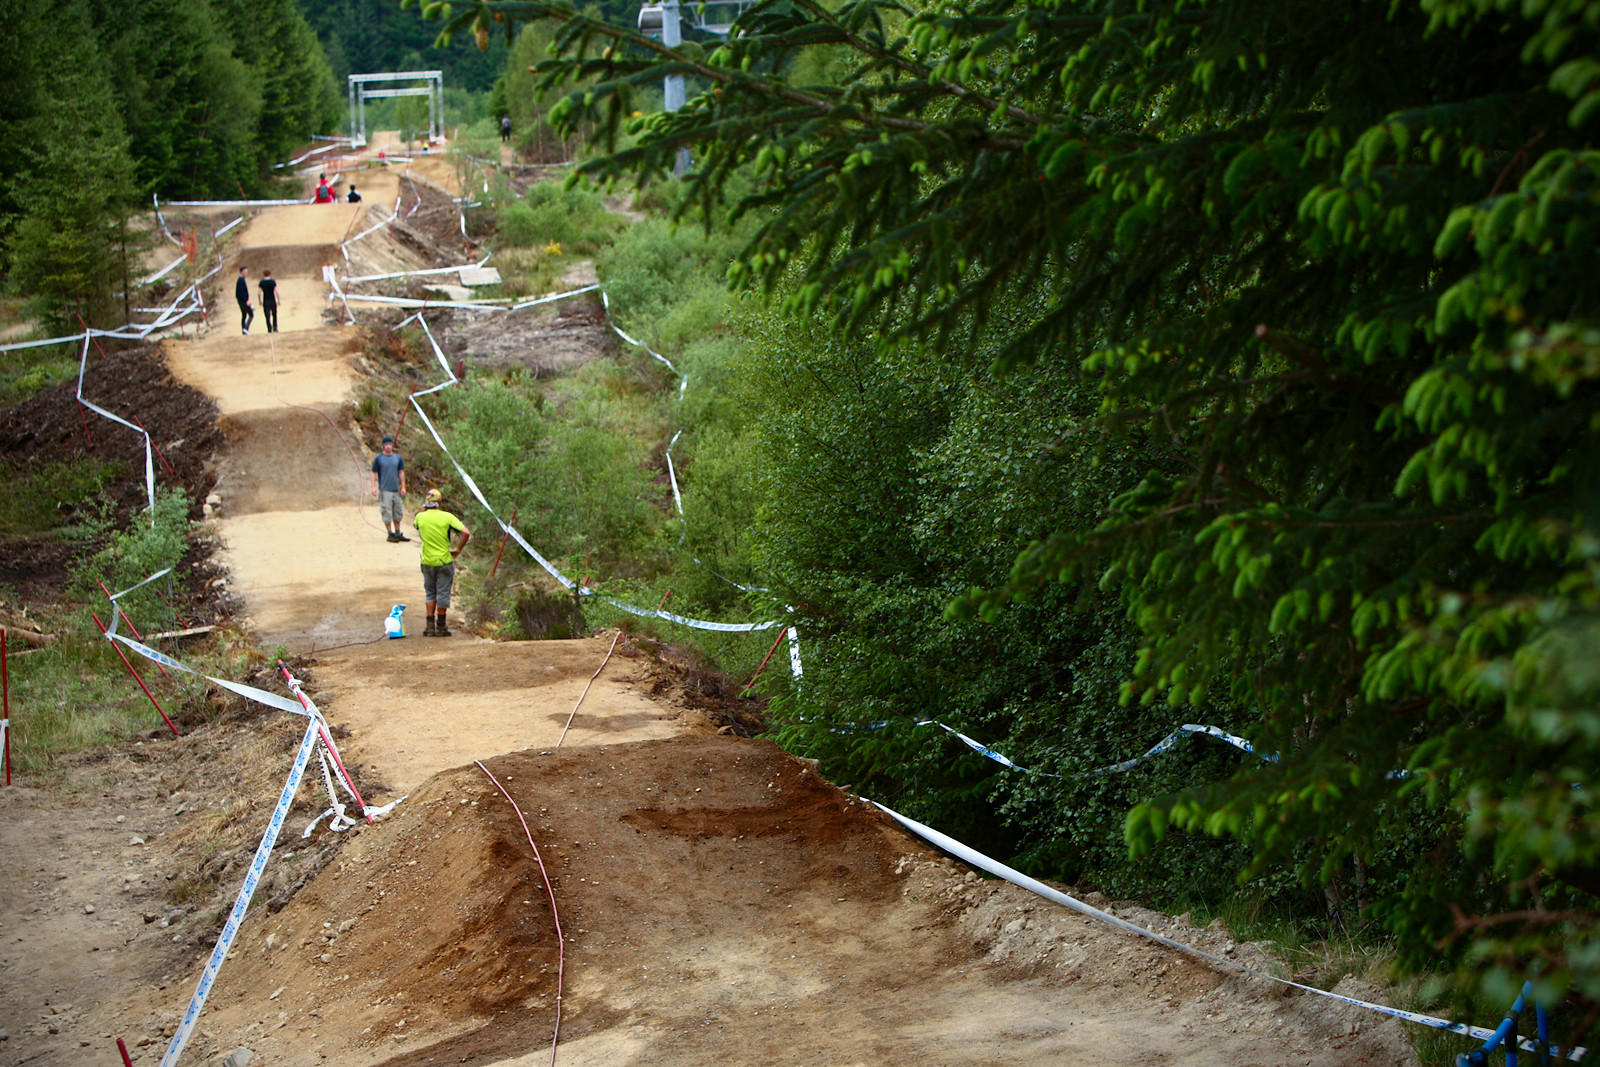 Fort William Motorway Jumps Look Like Pietermaritzburg - 2012 UCI World Cup, Fort WIlliam Scotland, Day 1 - Mountain Biking Pictures - Vital MTB